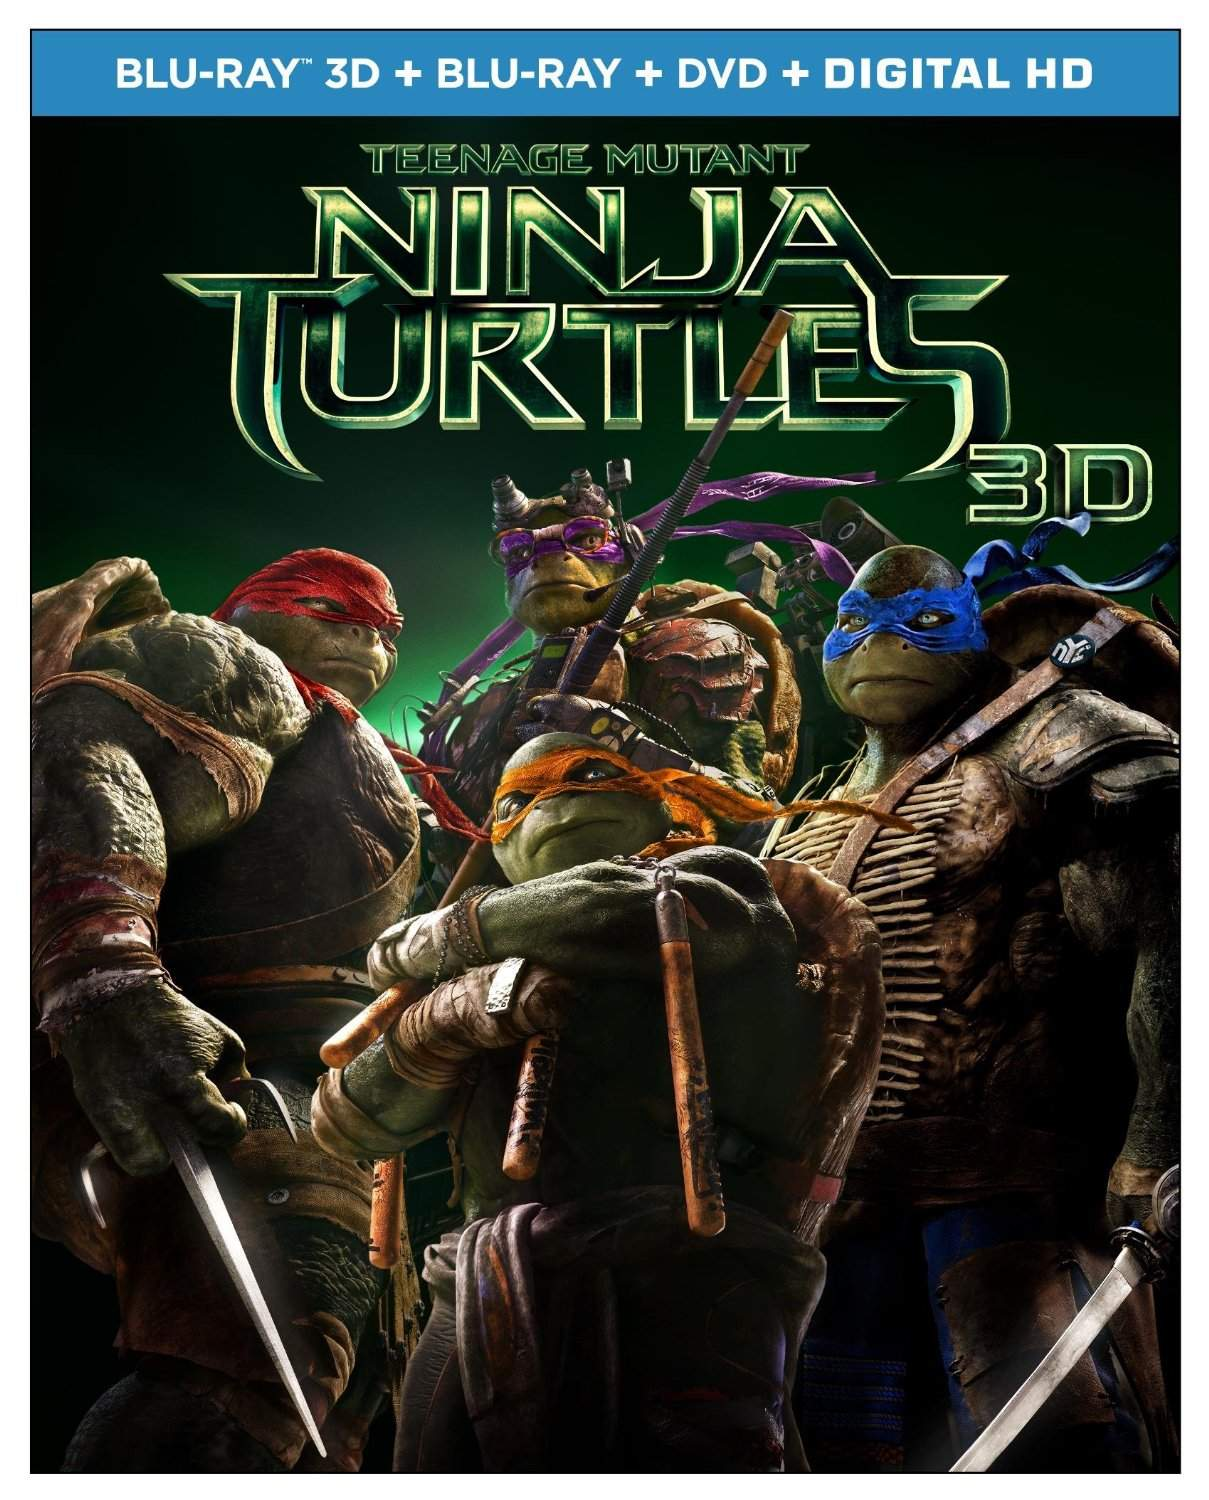 : Teenage Mutant Ninja Turtles 3d hou 2014 German dl 1080p BluRay x264 EXQUiSiTE